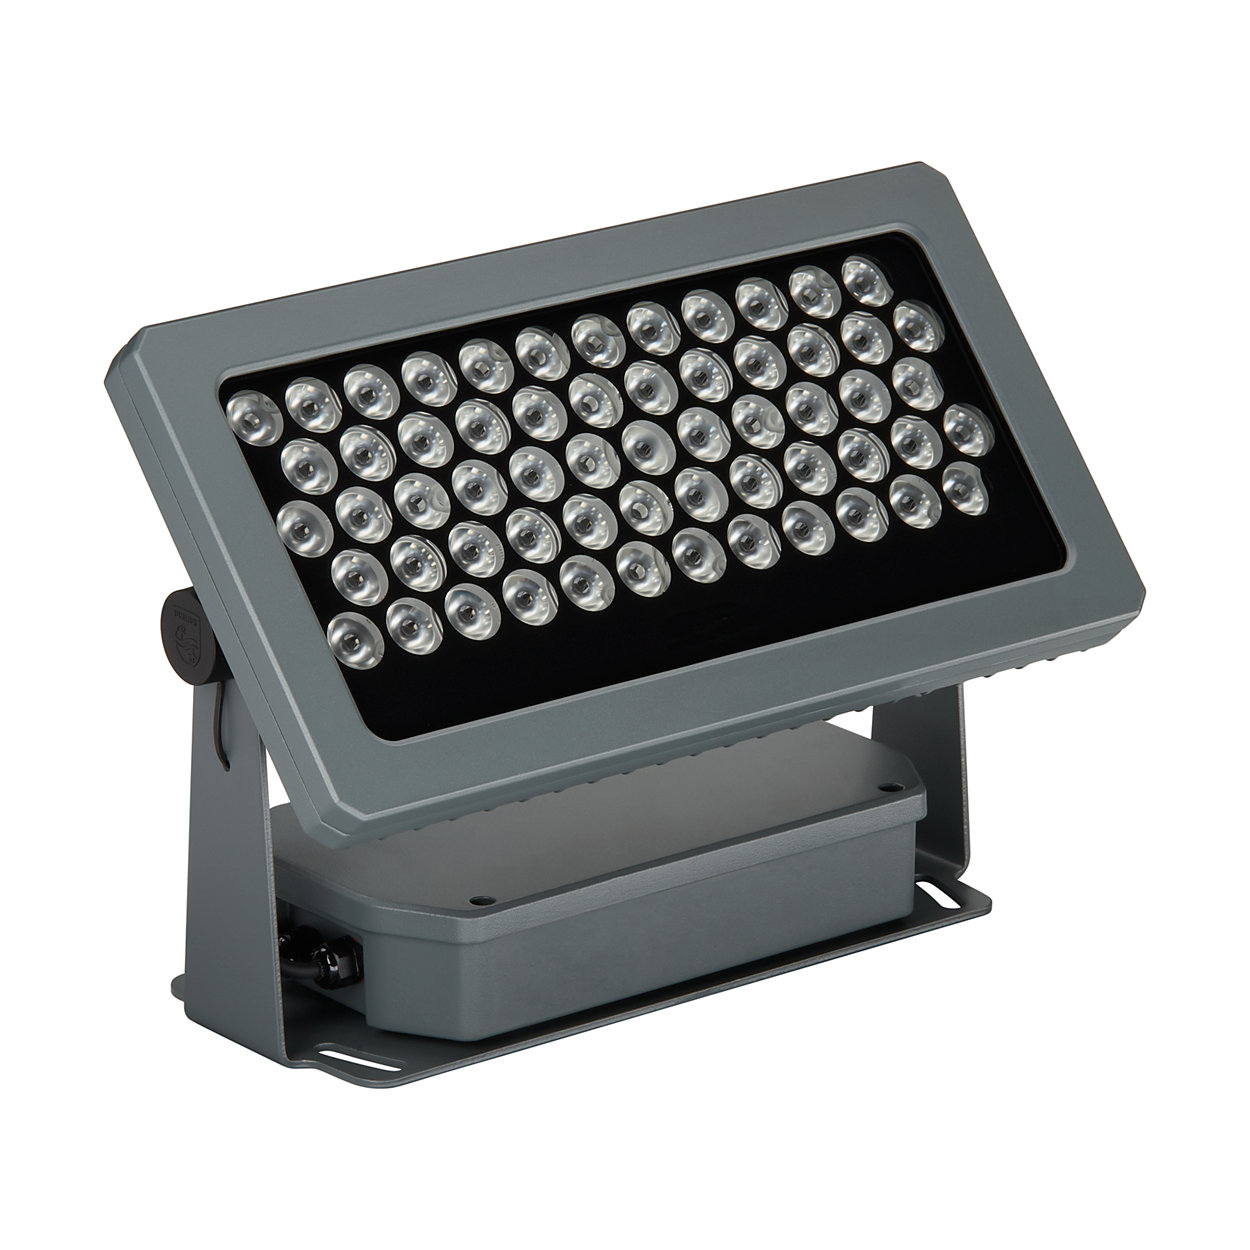 High power architectural LED flood light for demanding applications